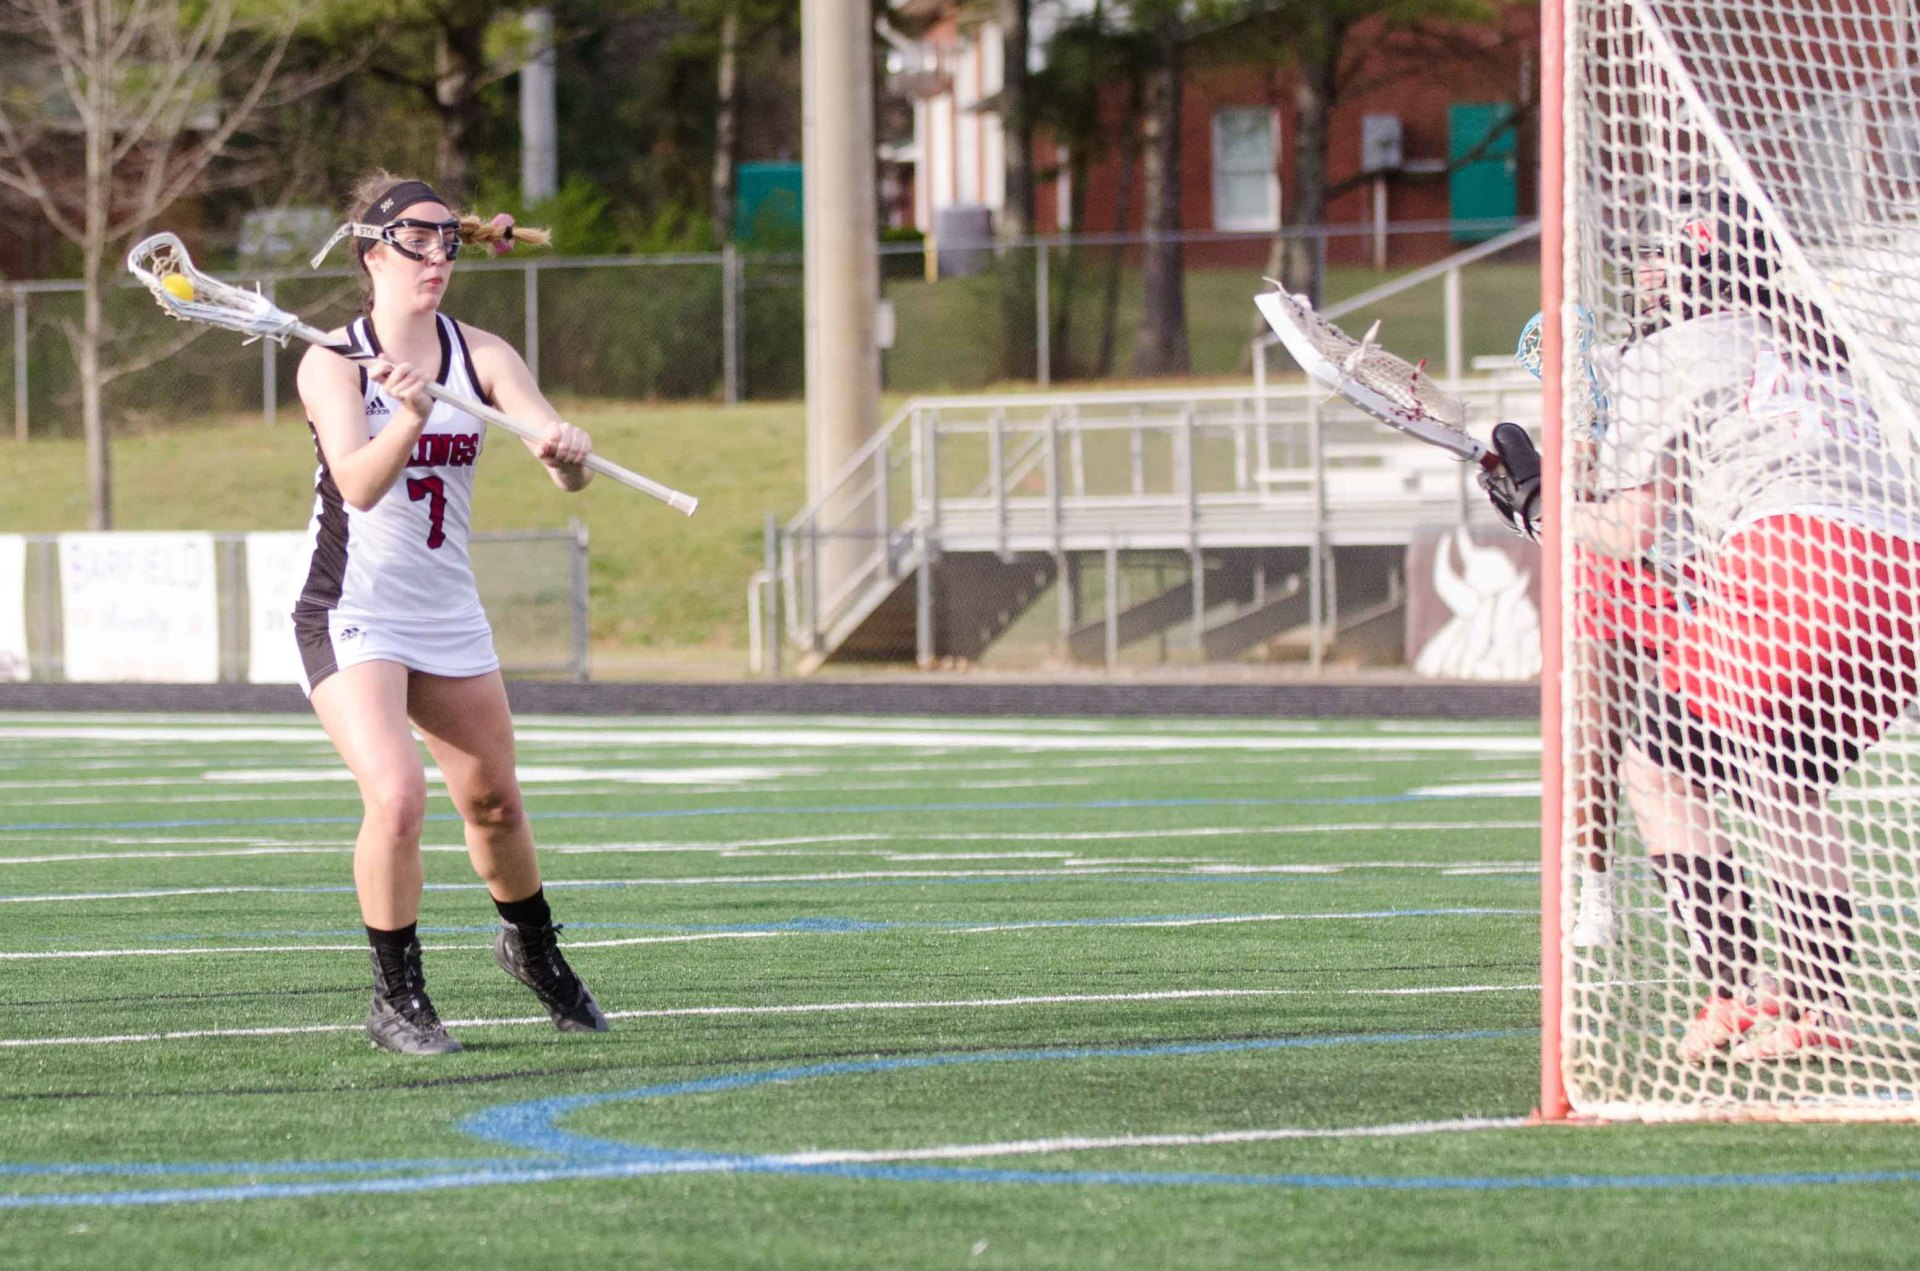 Kennedy Halpin scored a team-high five goals and added five ground balls in a win over Woodward.